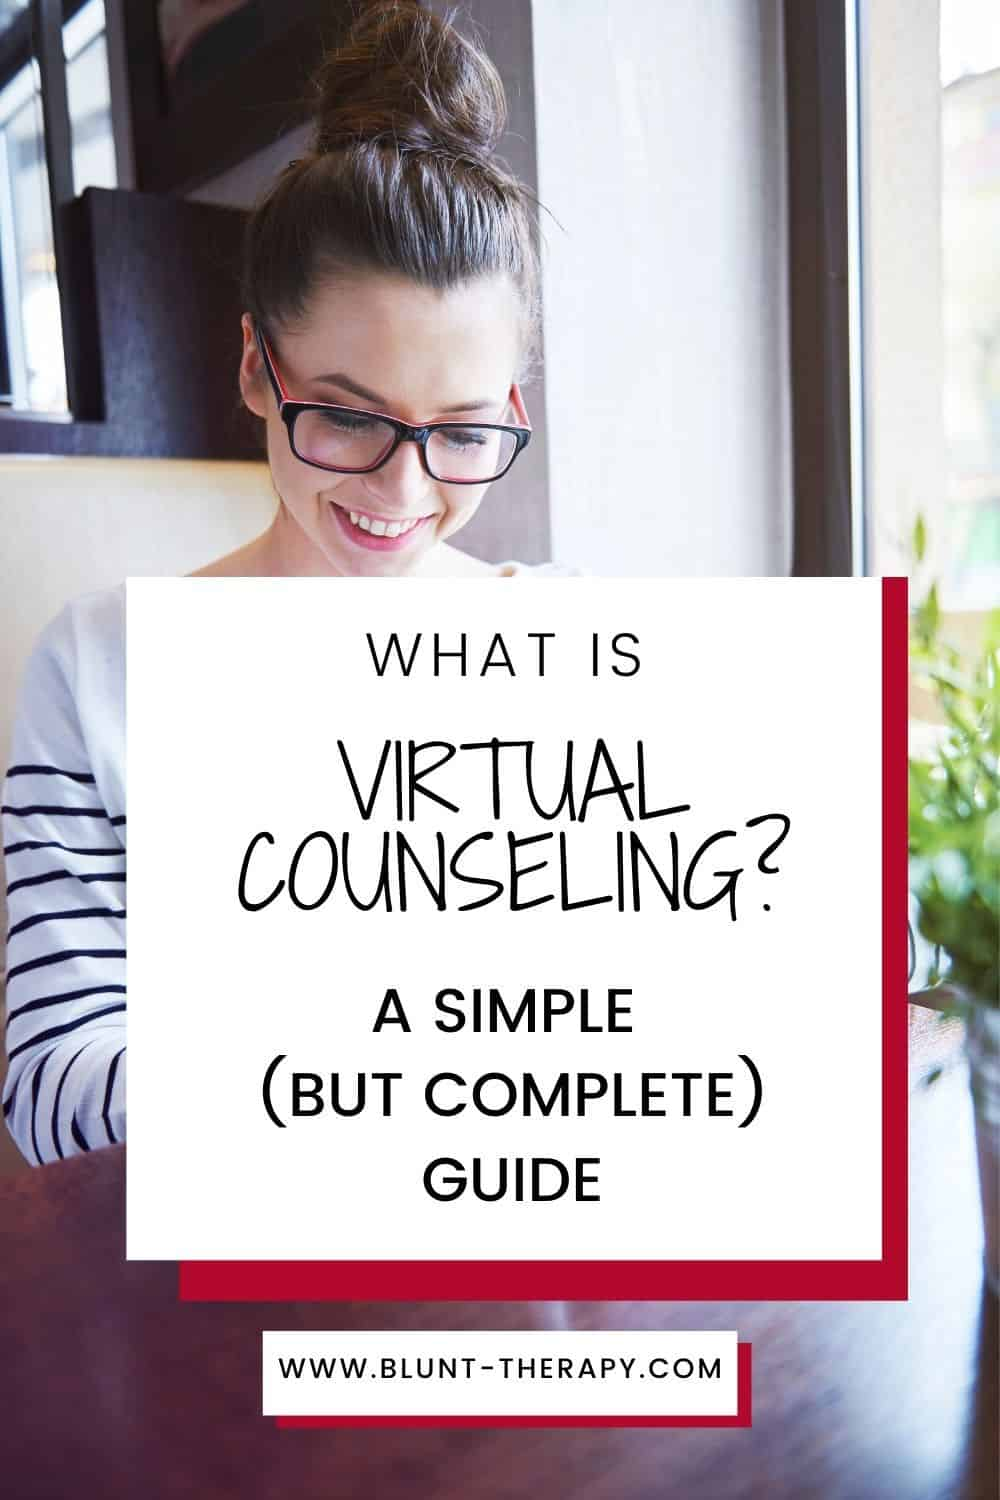 What Is Virtual Counseling?